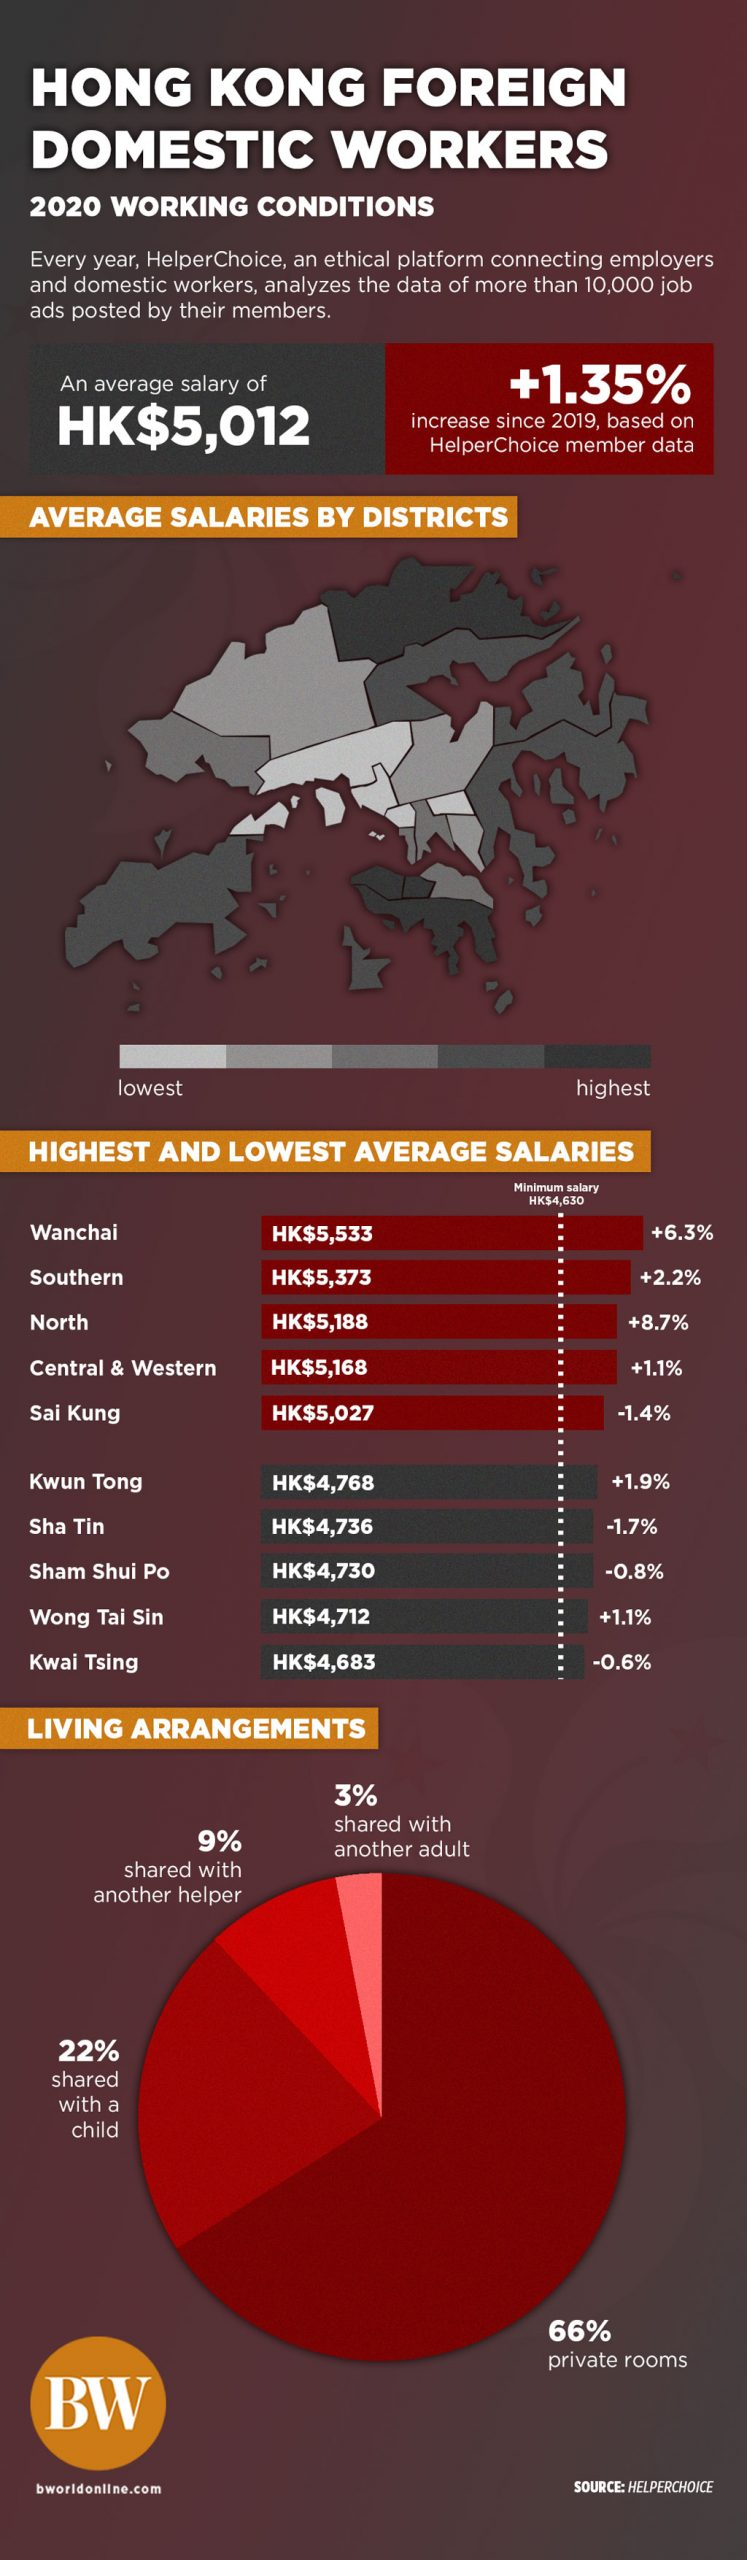 1104 infog helperchoice scaled - HK domestic workers' monthly salary tops HK$5,000 this year